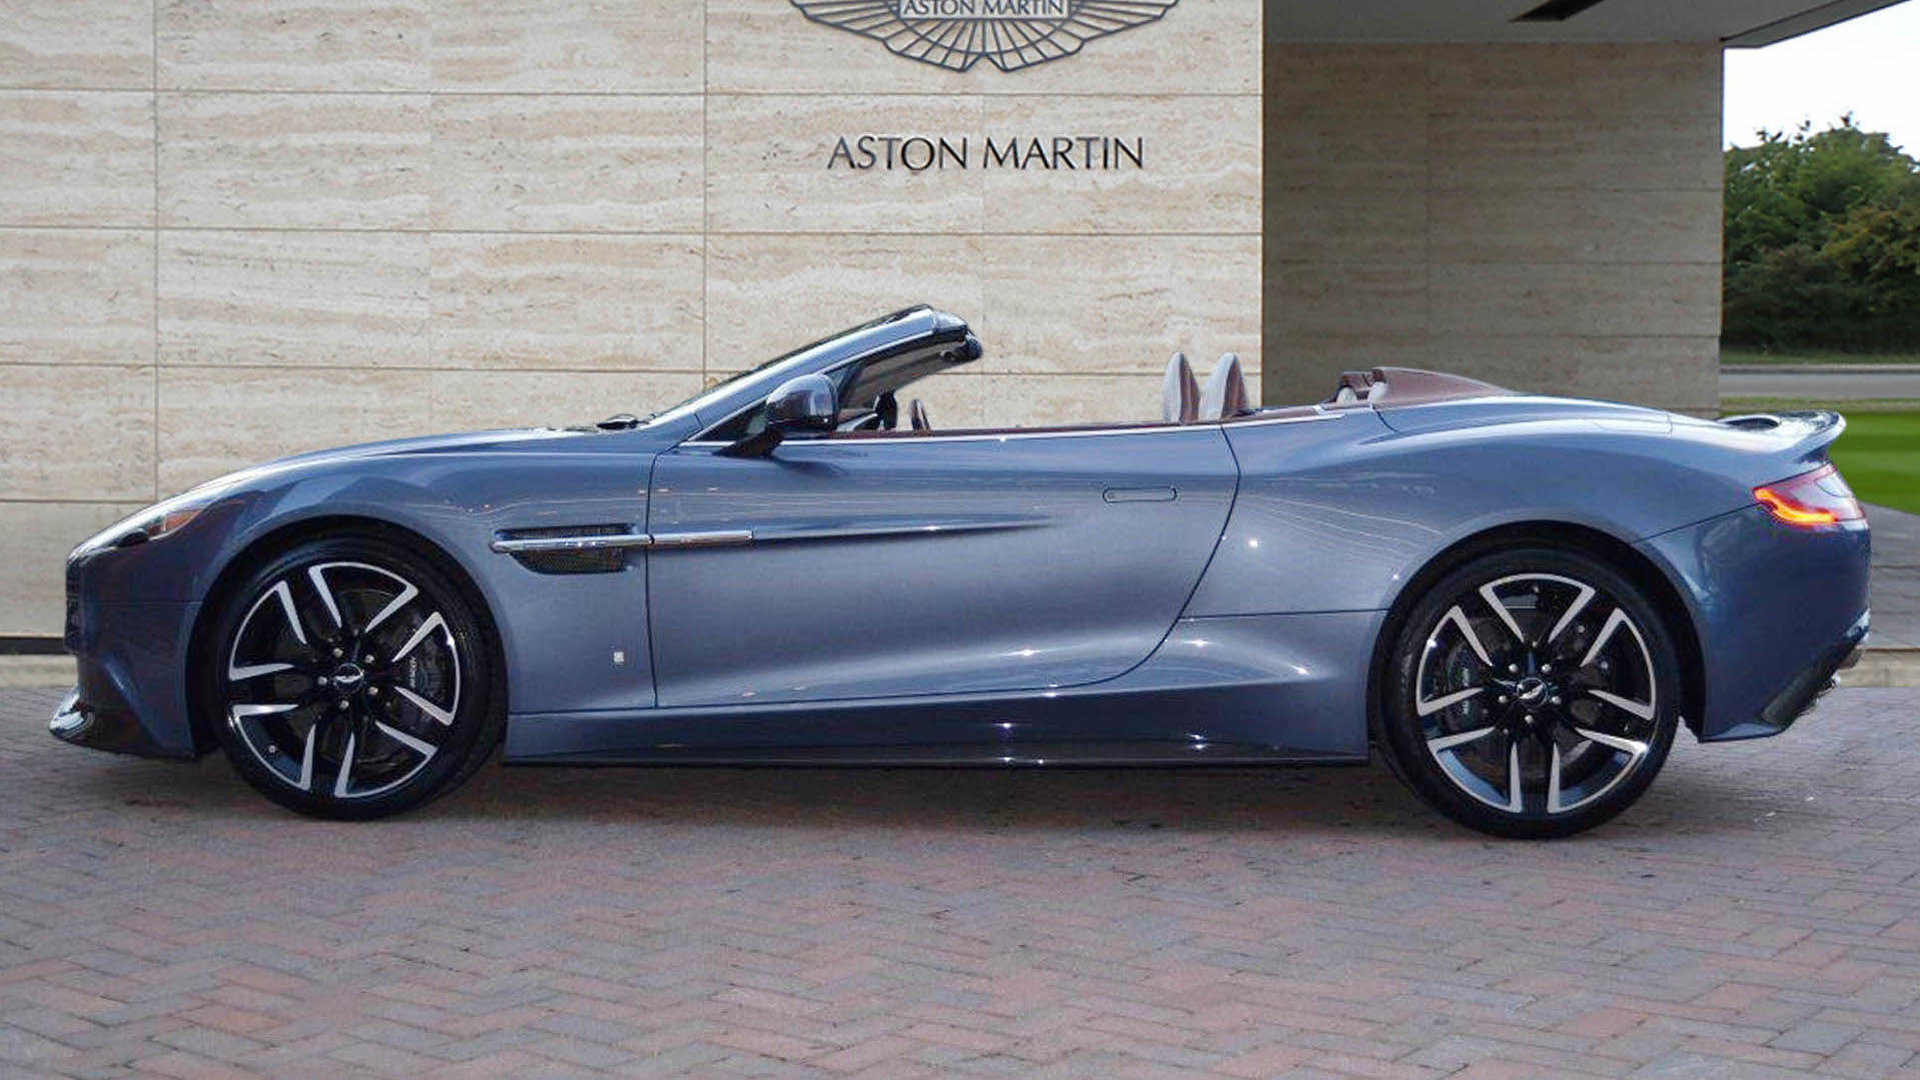 One Off Aston Martin Is A 236 950 Road Going Yacht